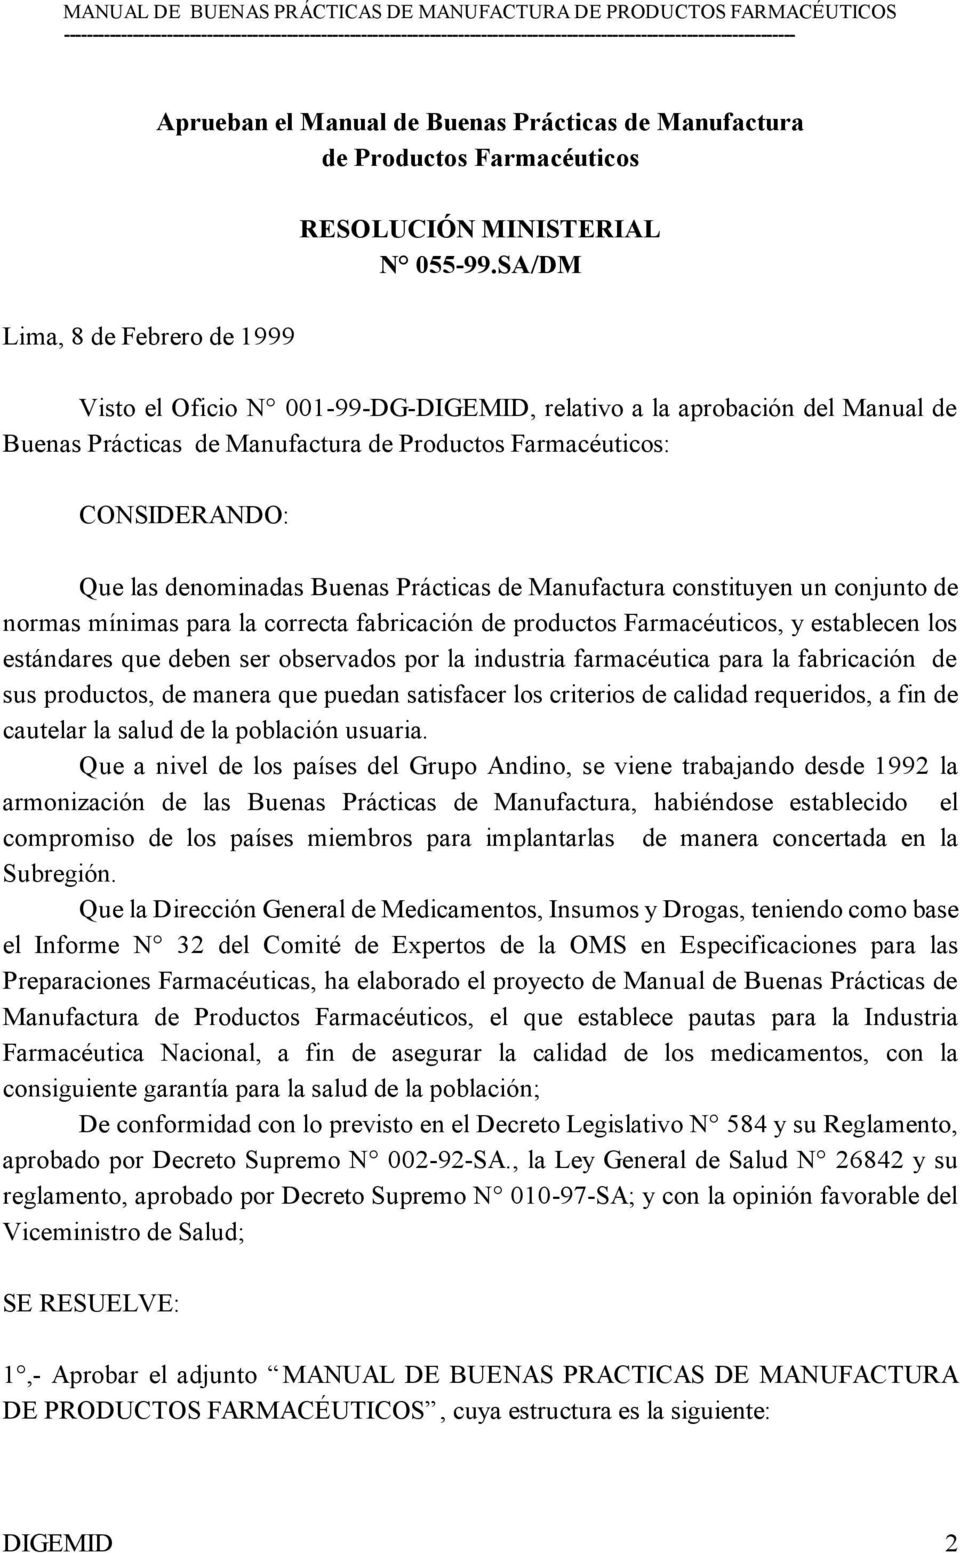 Republica del peru digemid pdf for Manual de buenas practicas de manufactura pdf